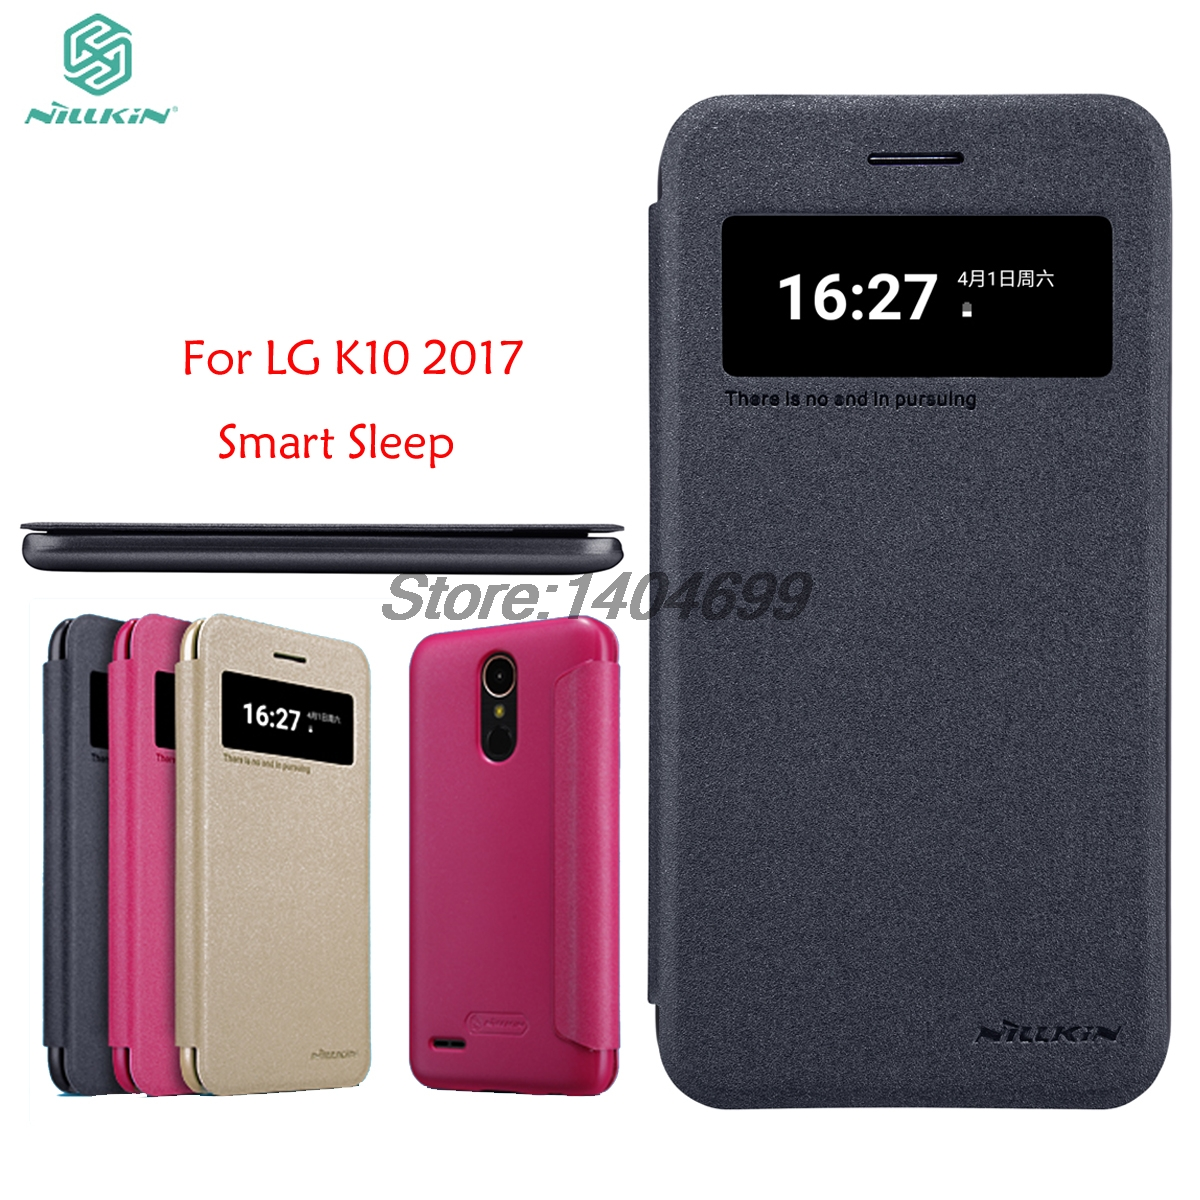 the best attitude fca13 7b08a US $9.89 |sFor LG K10 2017 Flip Case LG K10 2017 Case Nillkin Sparkle  Series PU Leather Cover Flip Case For LG K10 2017 With View Window-in Flip  Cases ...